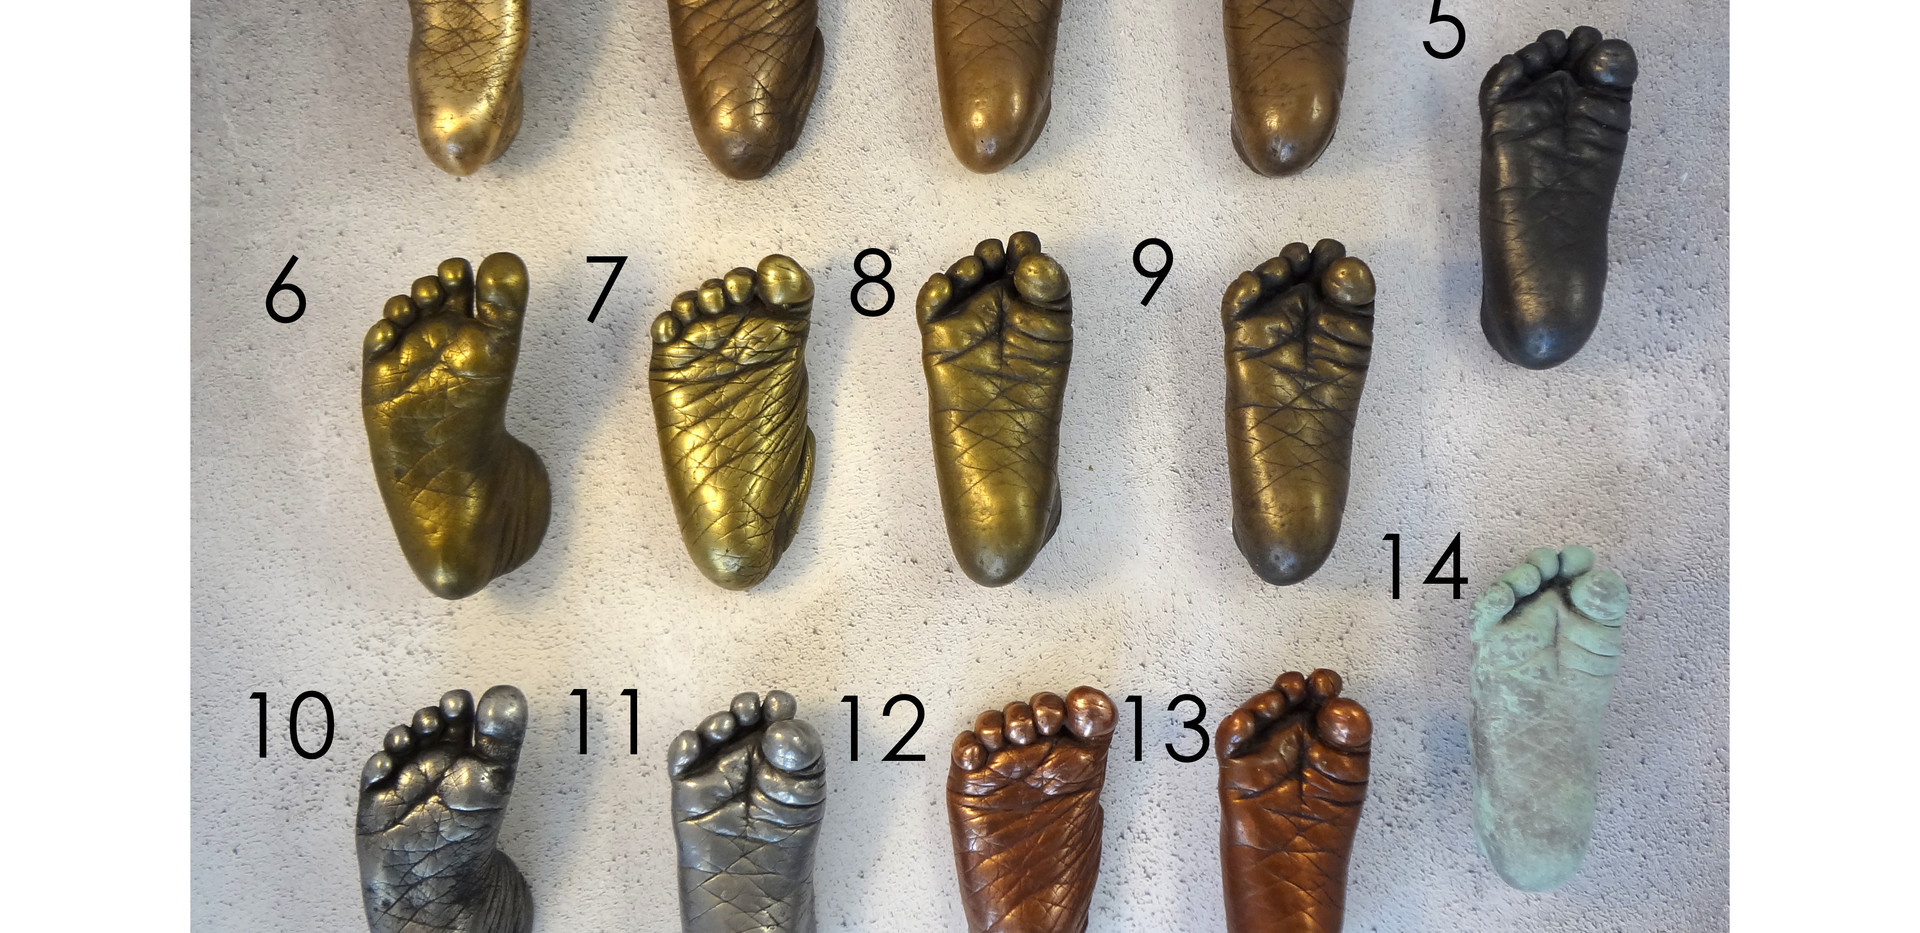 Cold Cast Metal Baby Casting Colour Samples by Angelcasts for DIY Baby Casting Kits